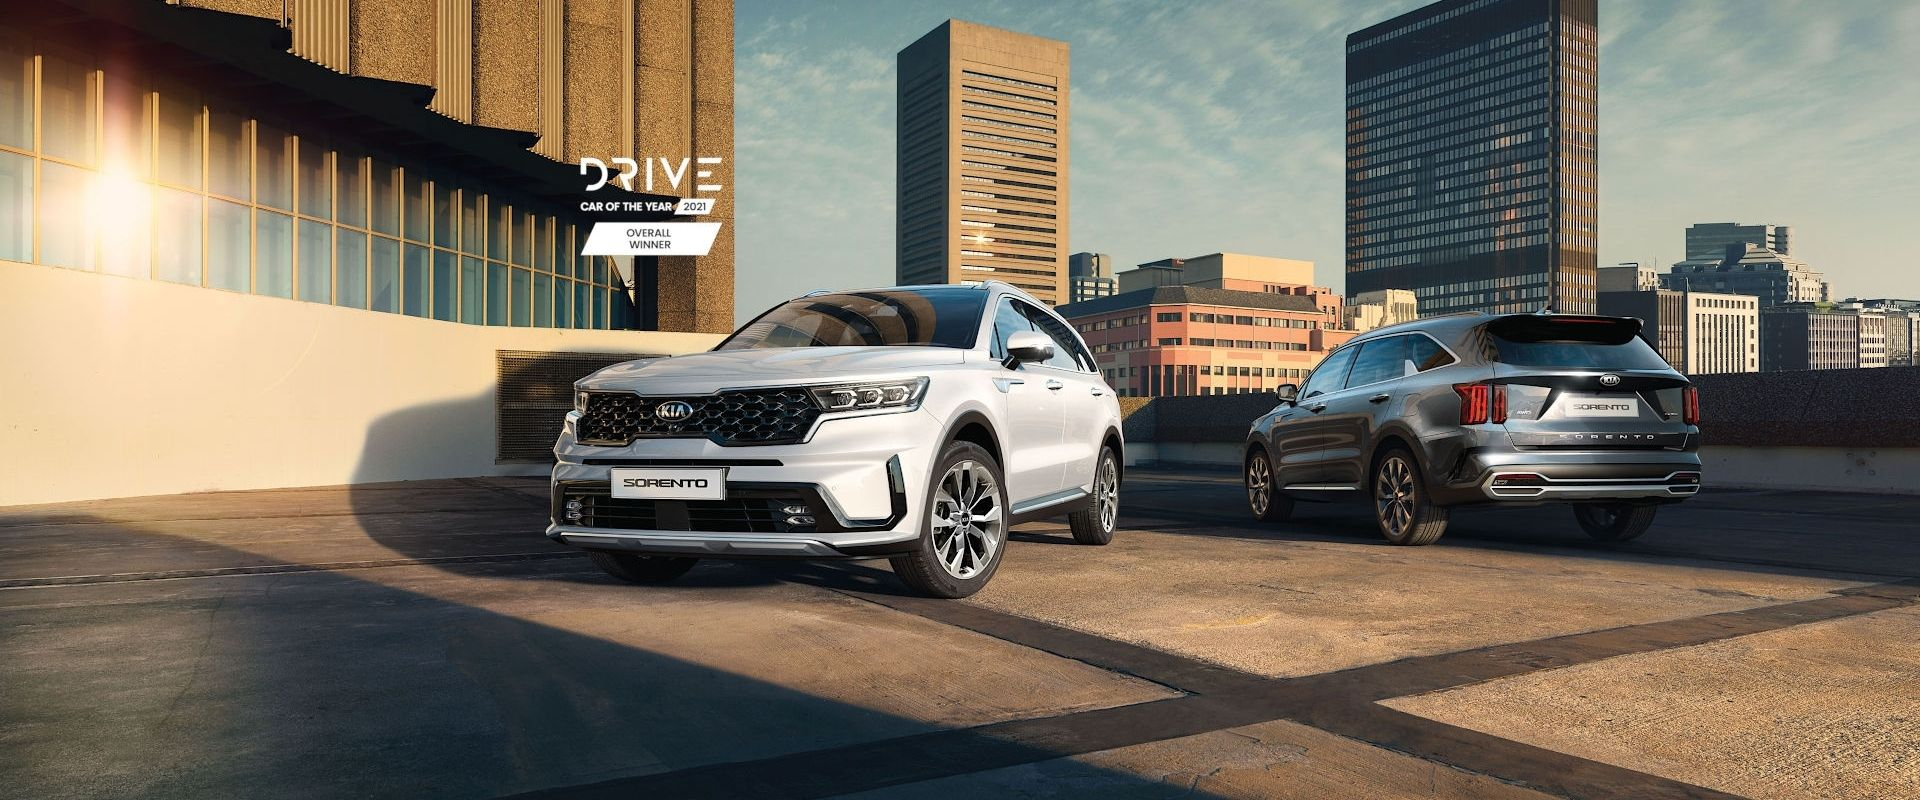 Kia Sorento - Drive Car of the Year 2021 - Overall Winner